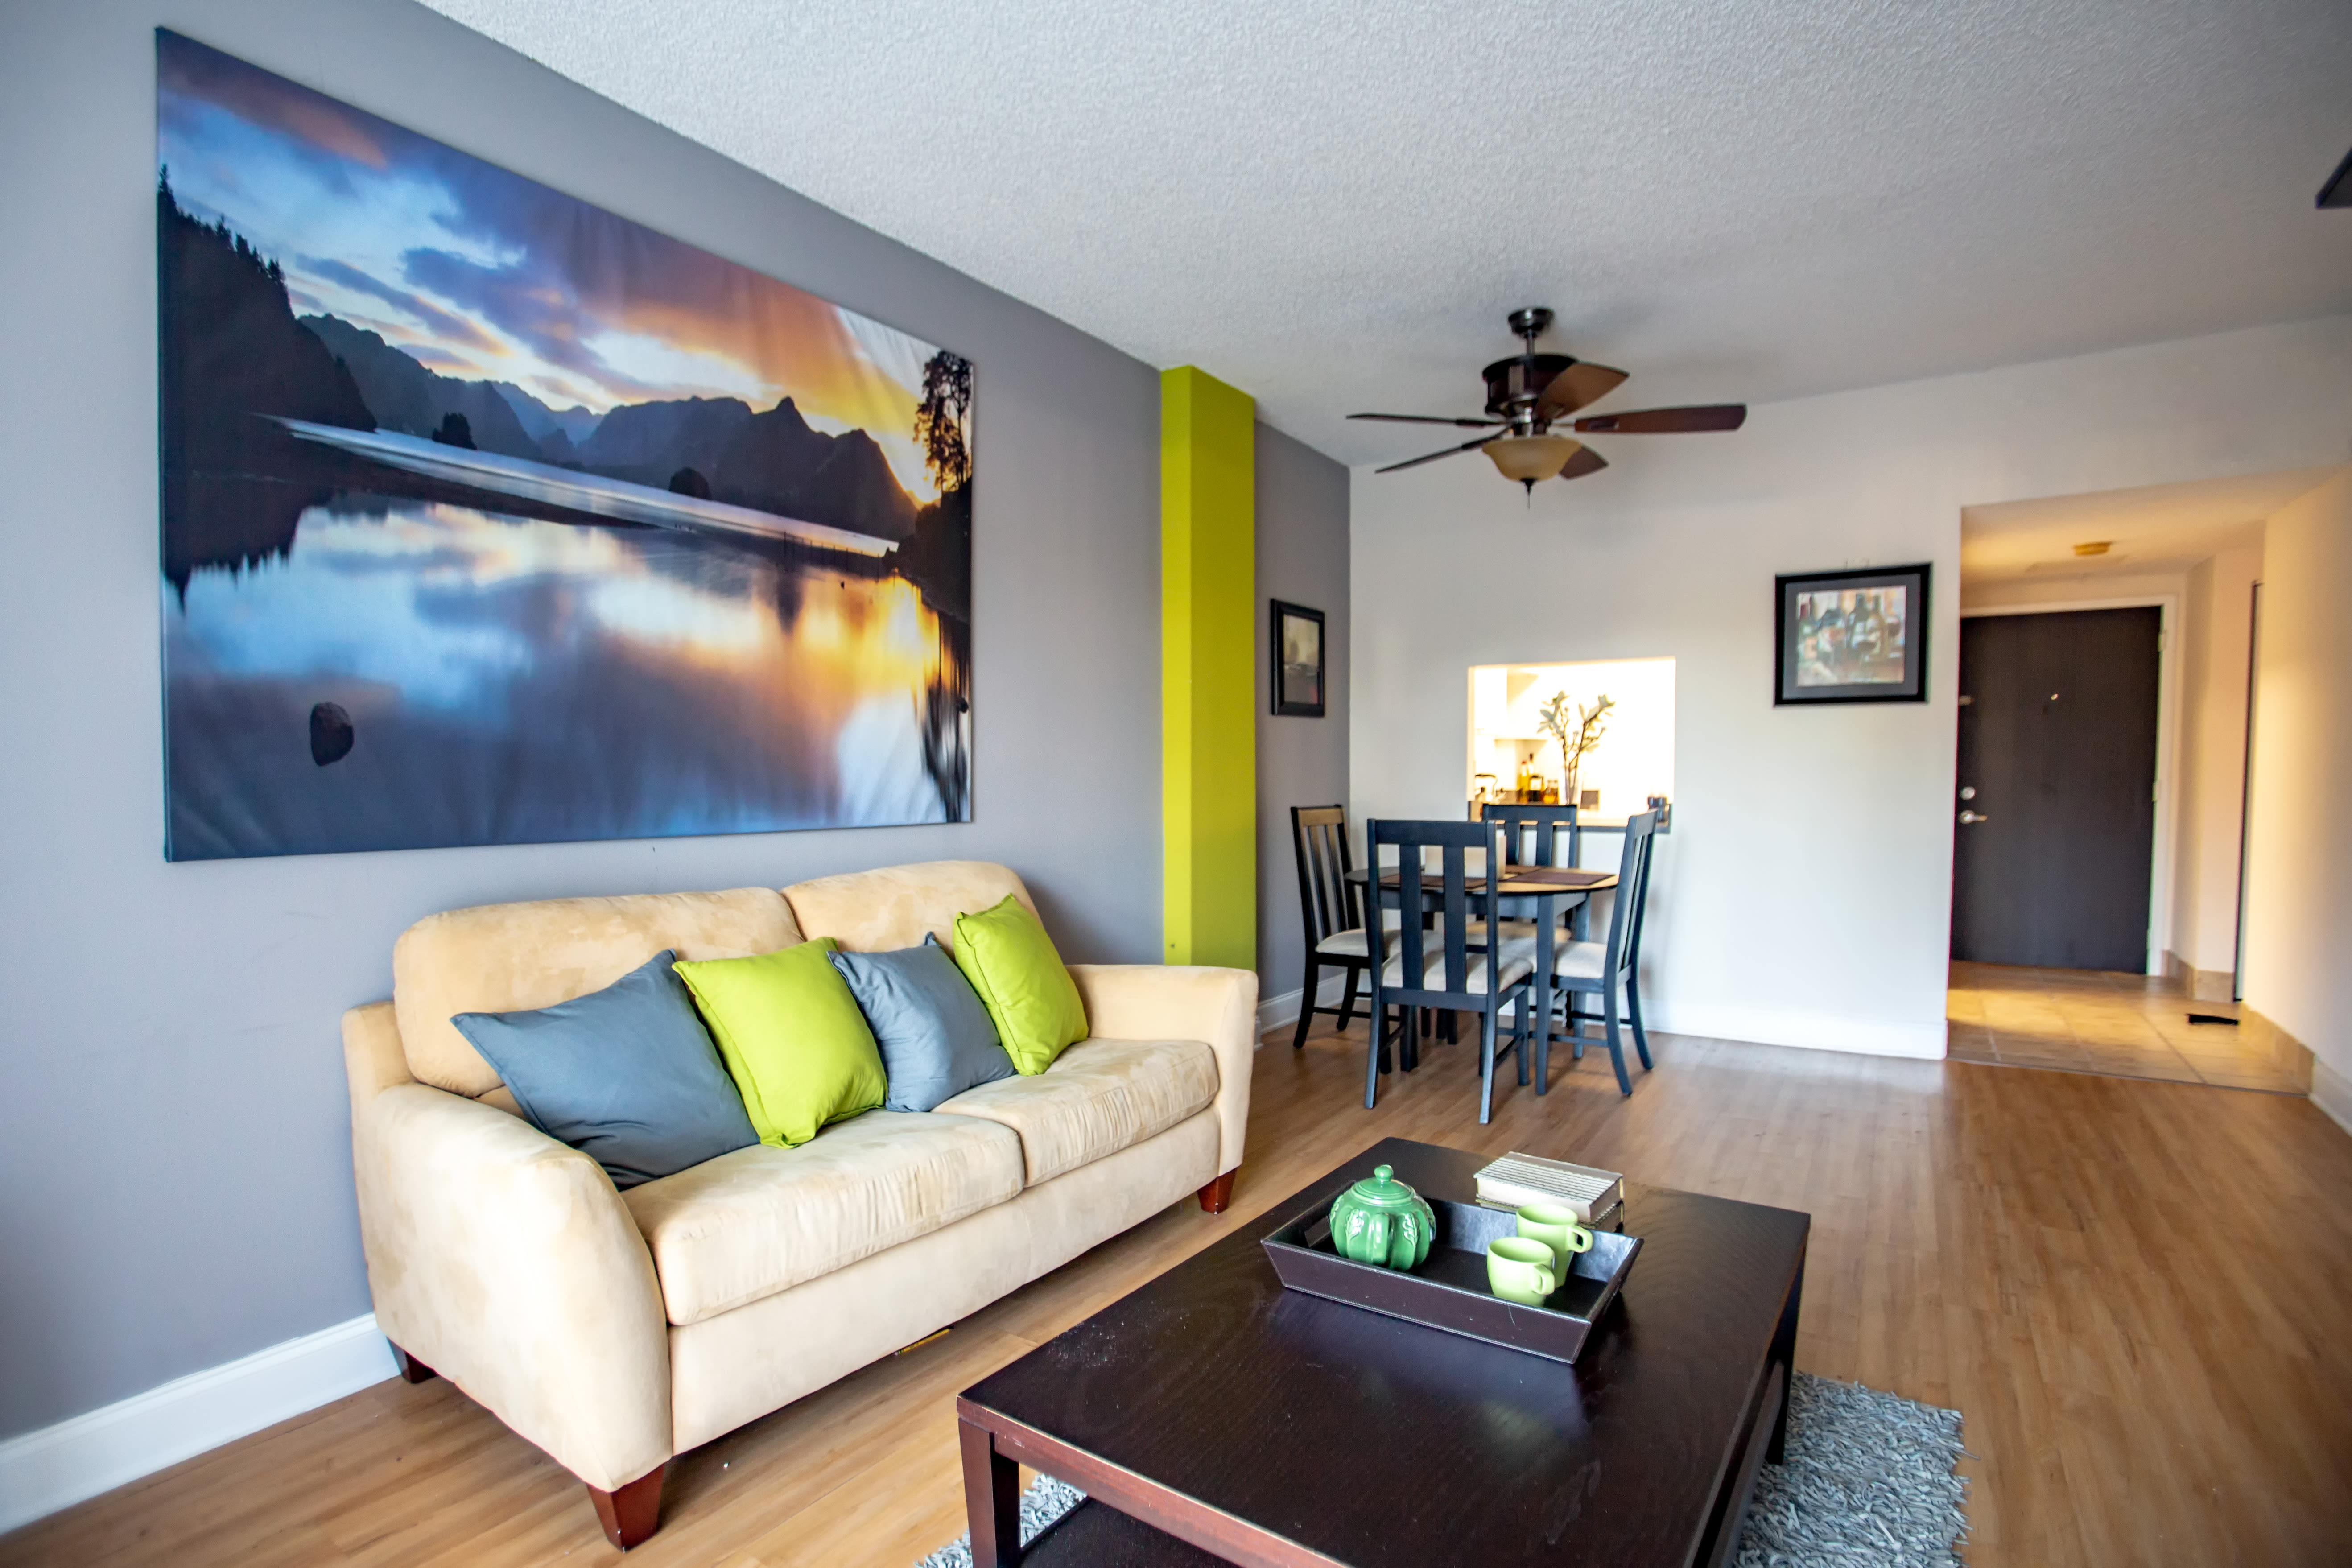 Modern decor, hardwood floors, and ceiling fan in model home's living room at Aliro Apartments in North Miami, FL